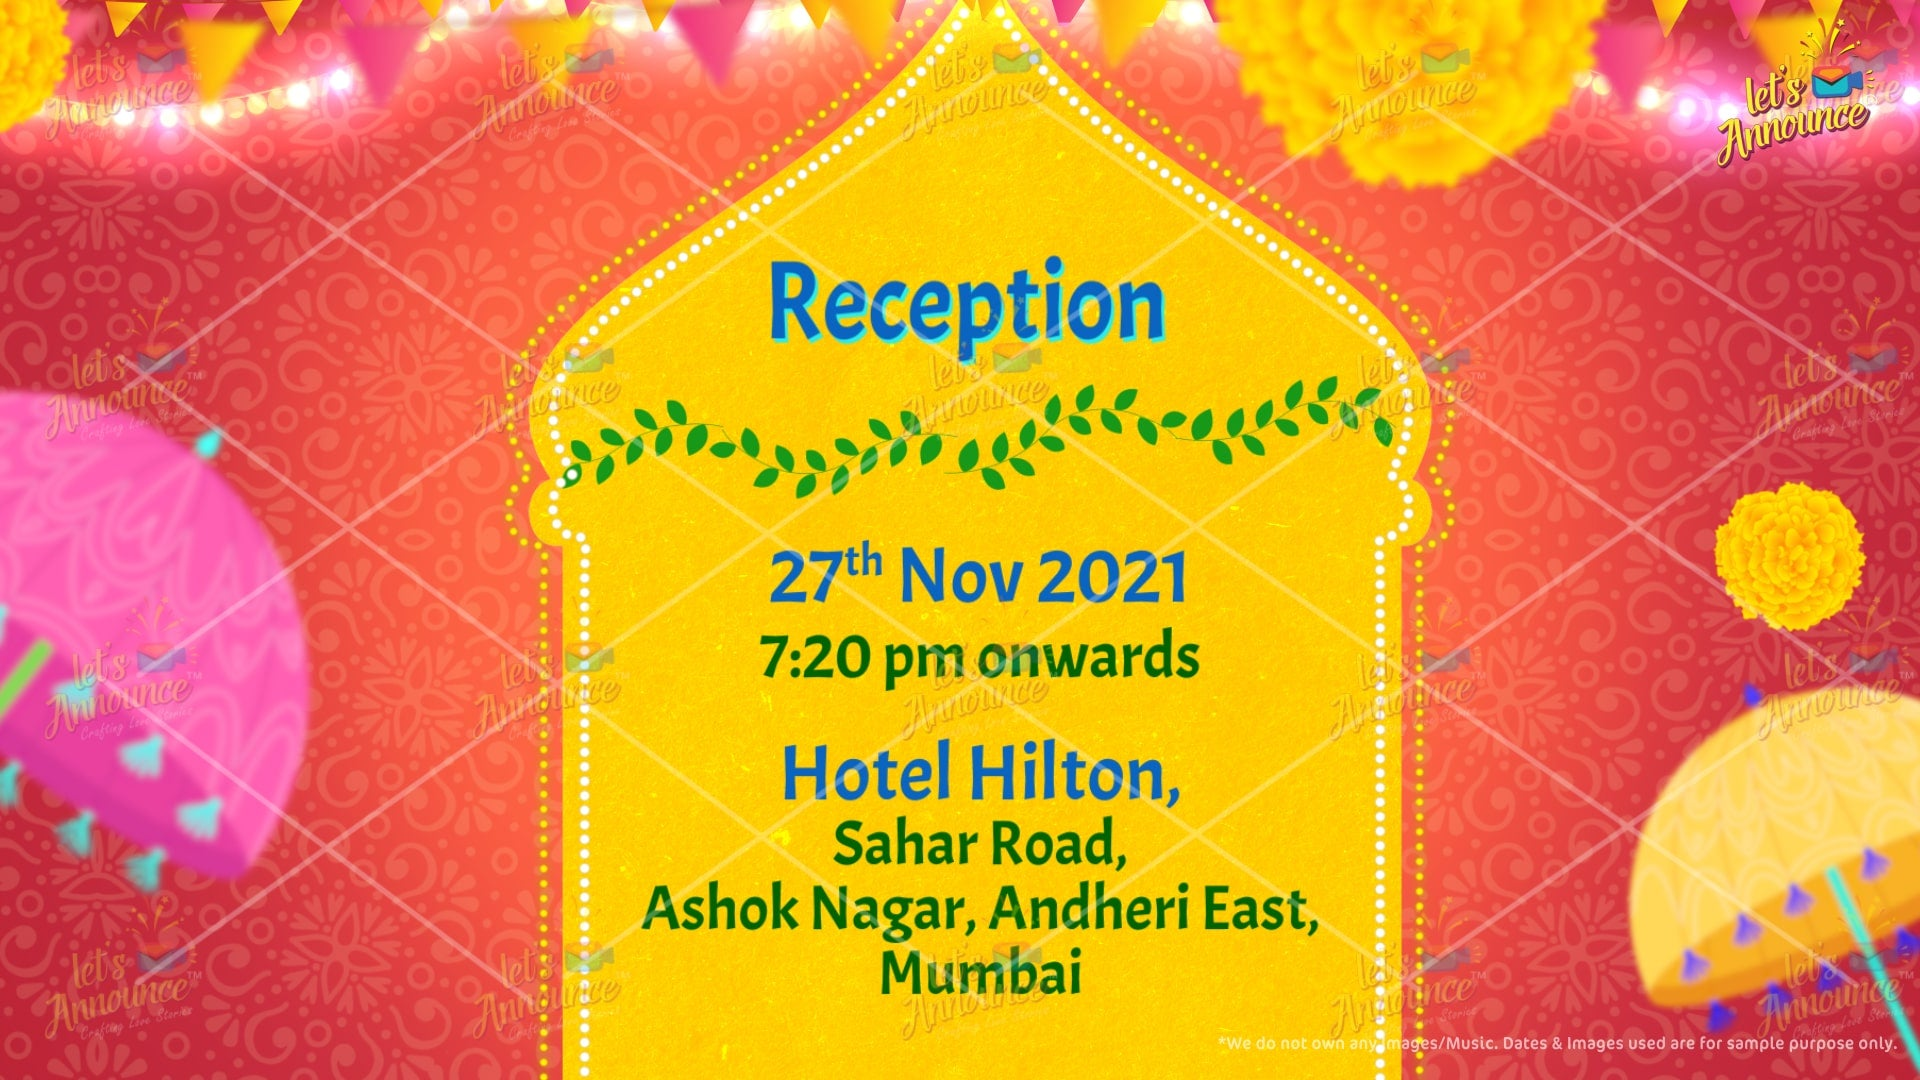 Reception Wedding Invitation by www.letsannounc.com